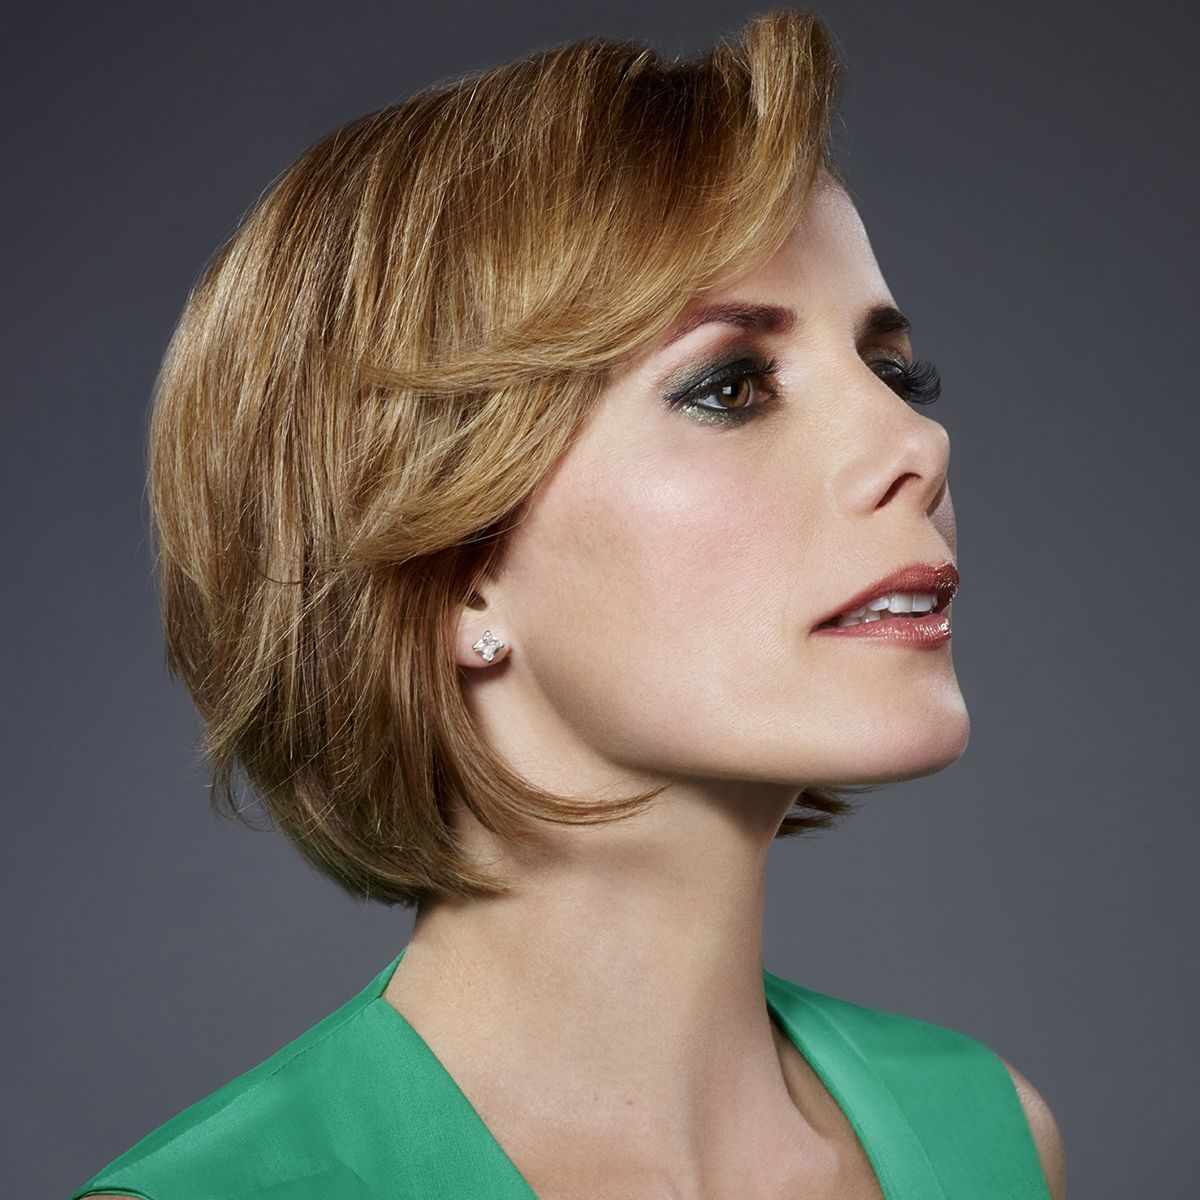 Strictly Come Dancing Judge Darcey Bussell Is New Face Of Silvikrin